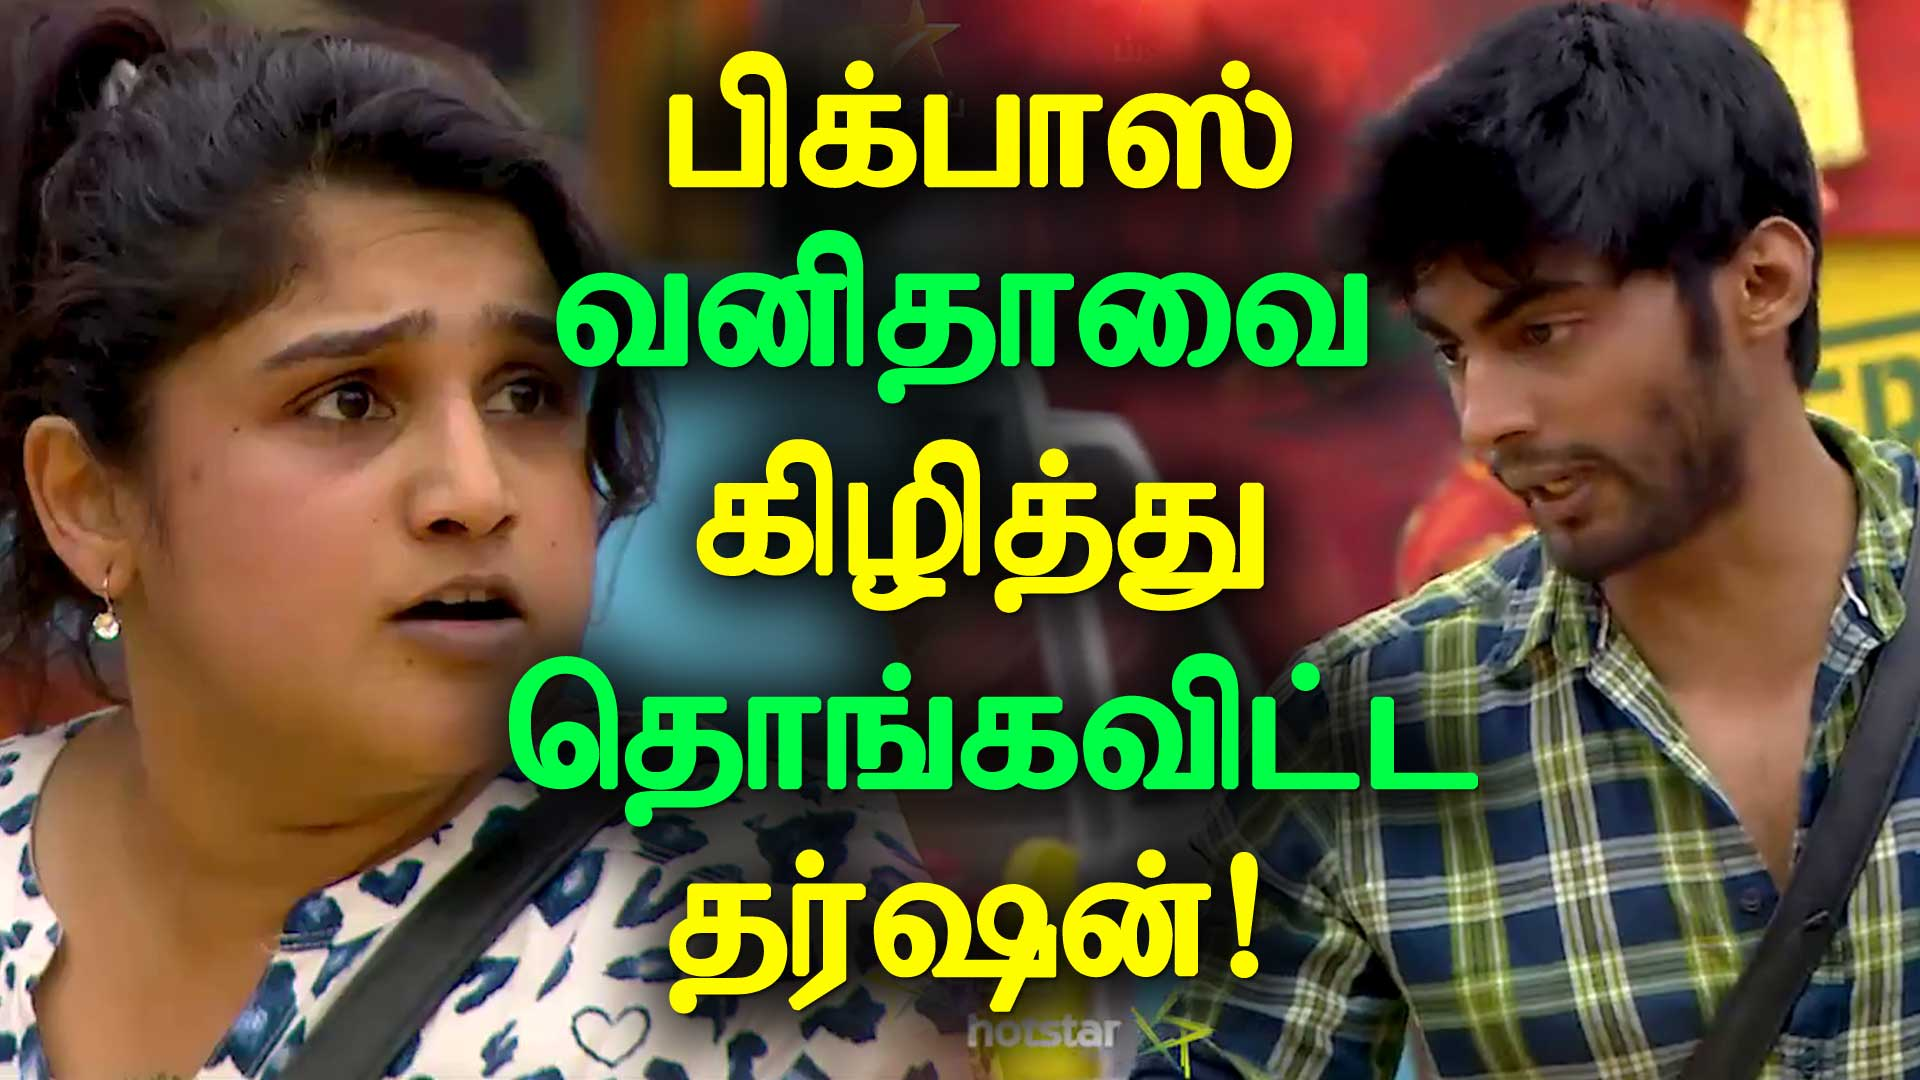 Bigg Boss 3- 12th July 2019 Promo 1|Bigg Boss 3- 11th July 2019 Episode | Day 19 Promo | பிக் பாஸ் 3